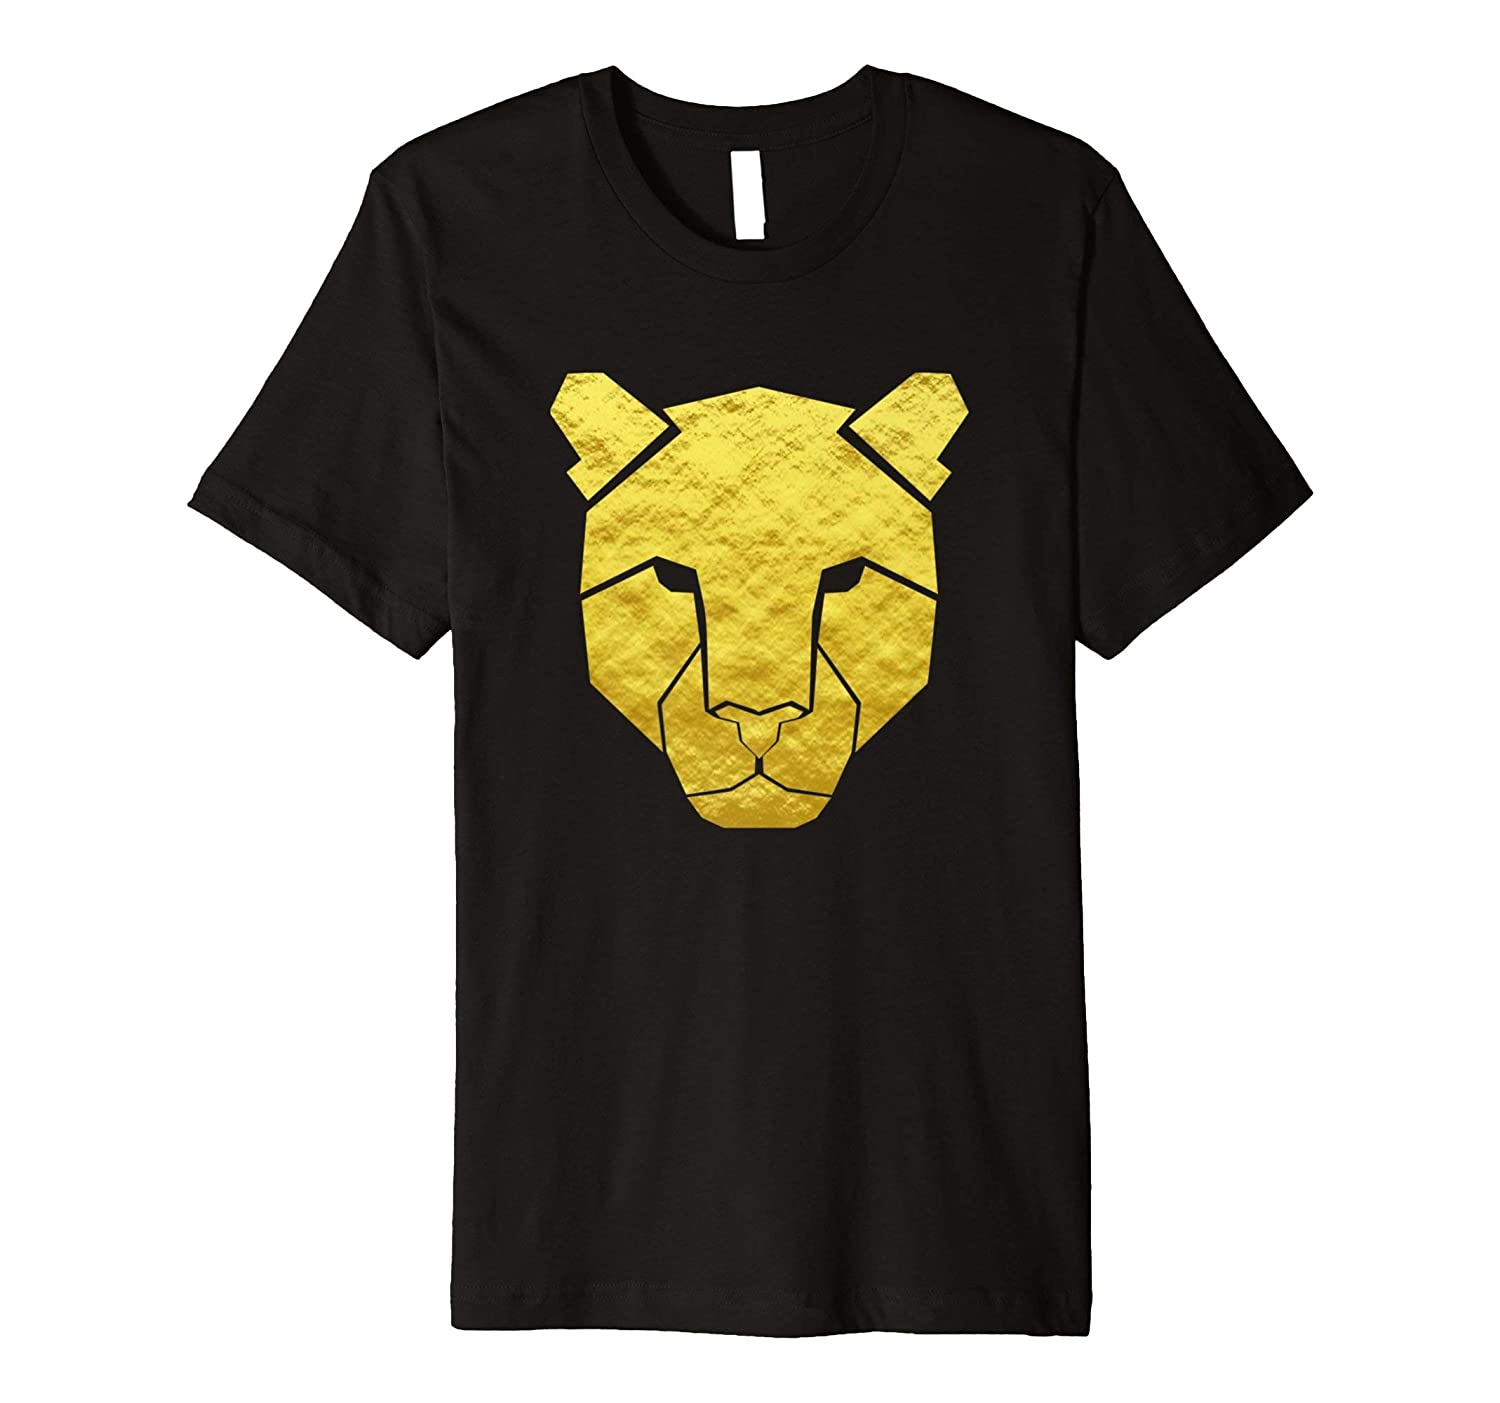 c0f983831 Amazon.com: Panther T-Shirt African Black Pride Gold Graphic Tee Gift:  Clothing